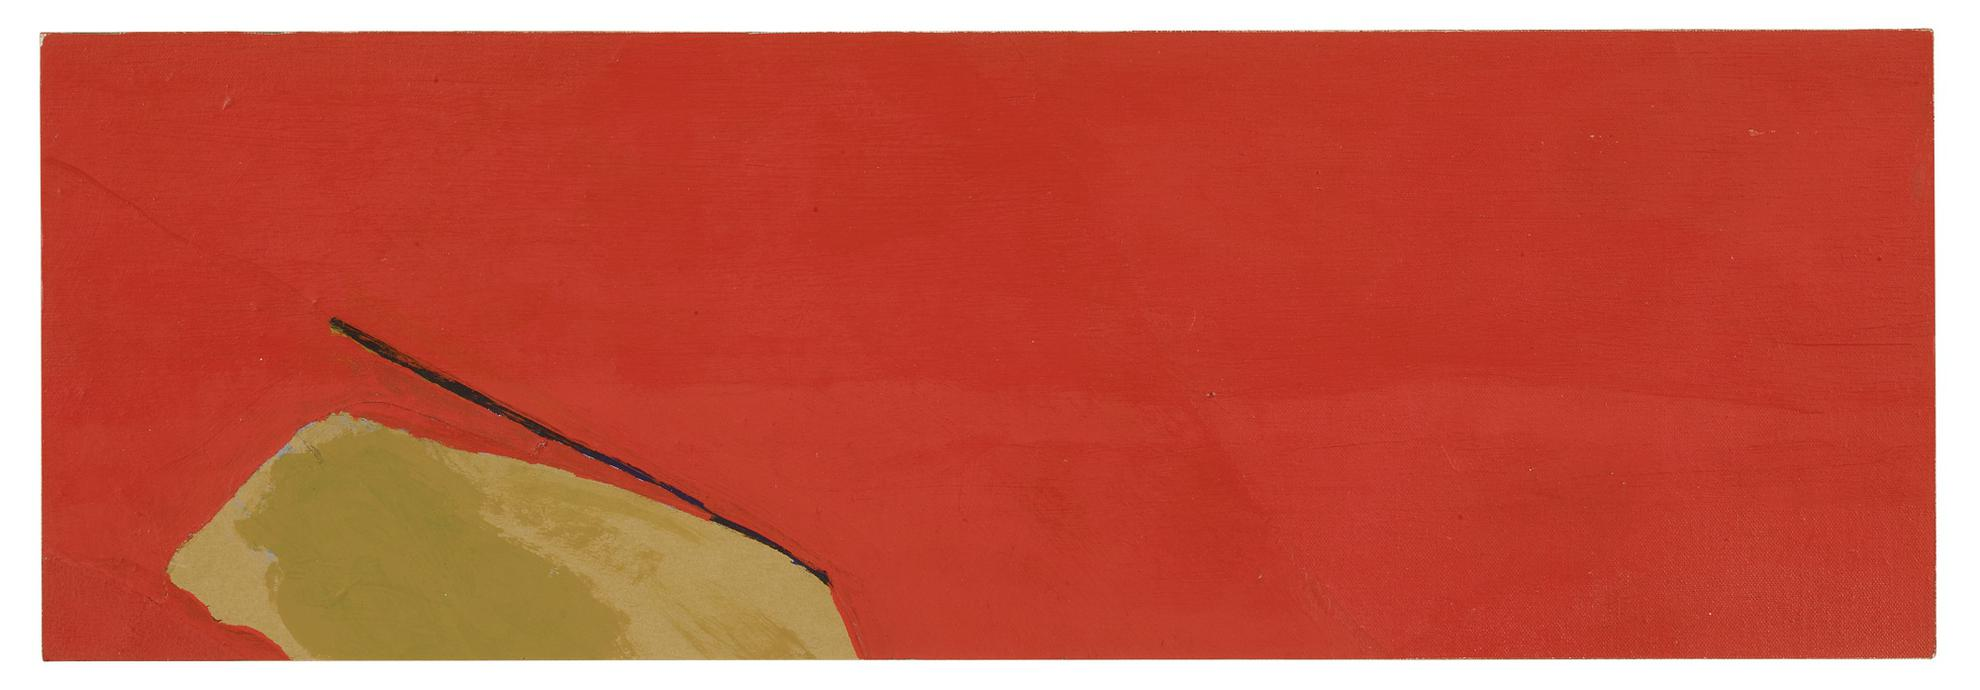 Robert Motherwell-The Disappearance Of Goyas Dog-1990